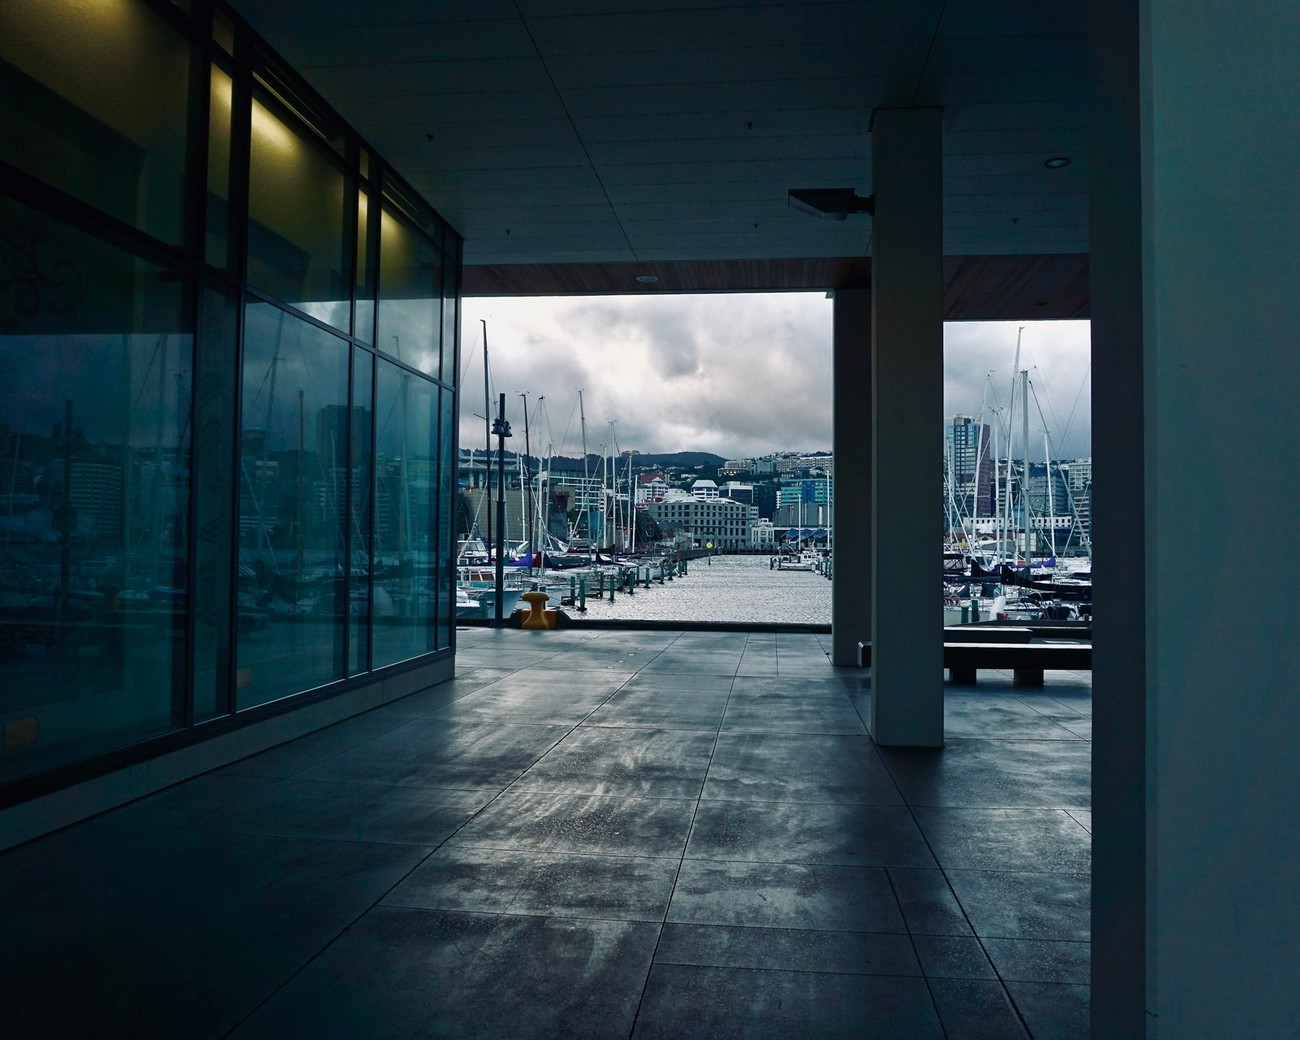 Looking through under the apartment building by Chaffers Marina, Wellington, NZ